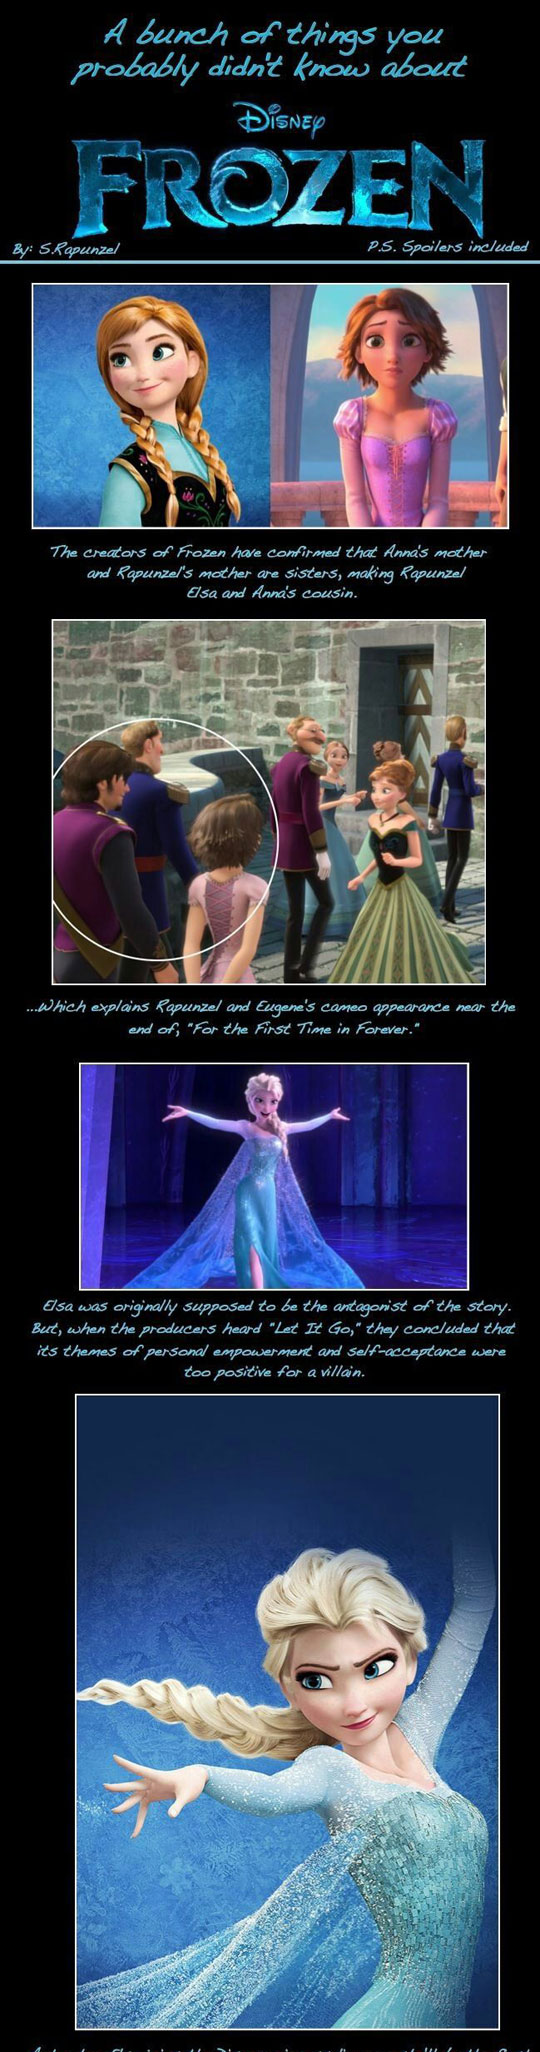 Stuff About Frozen You Probably Didn